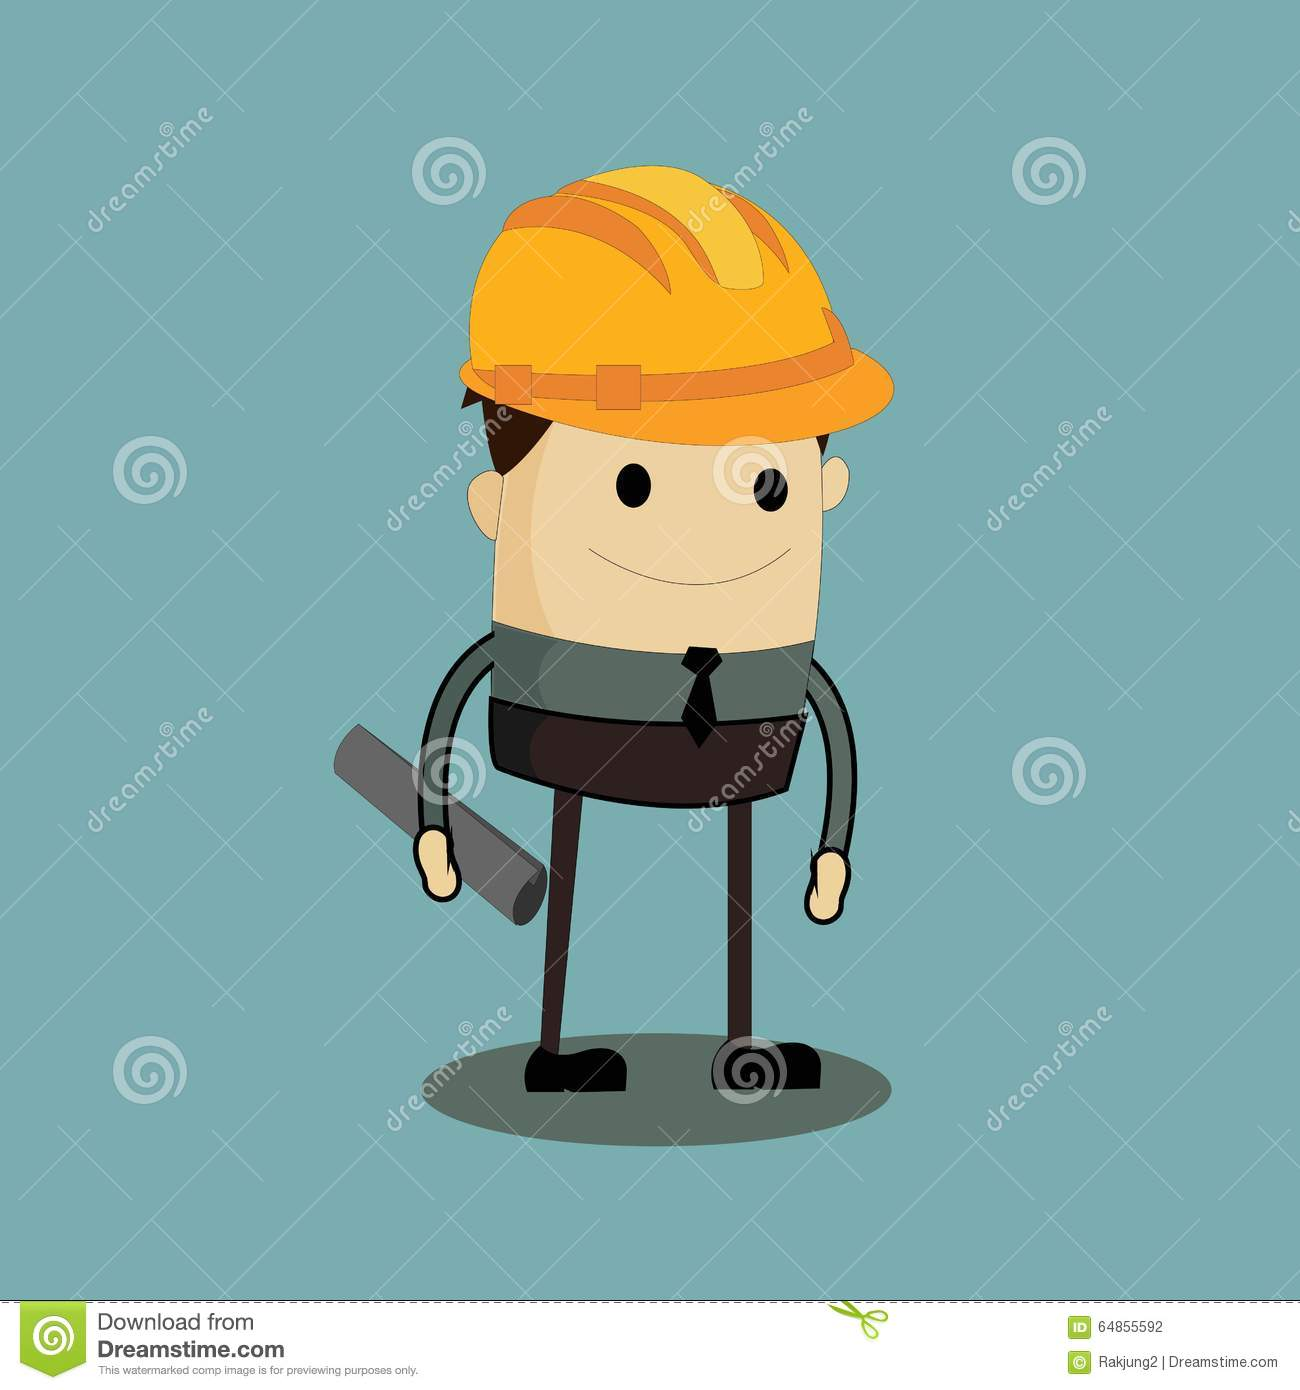 architect cartoon illustration background preview